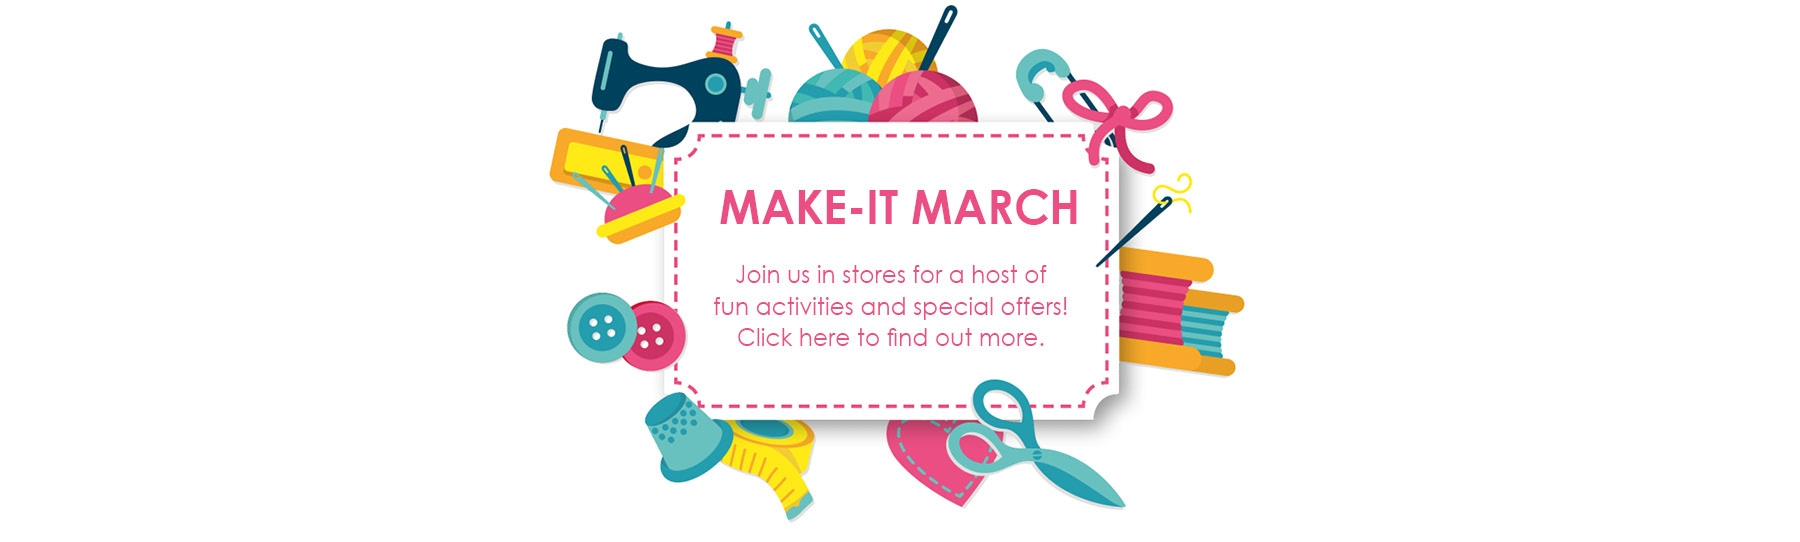 Make-It-March-Banner